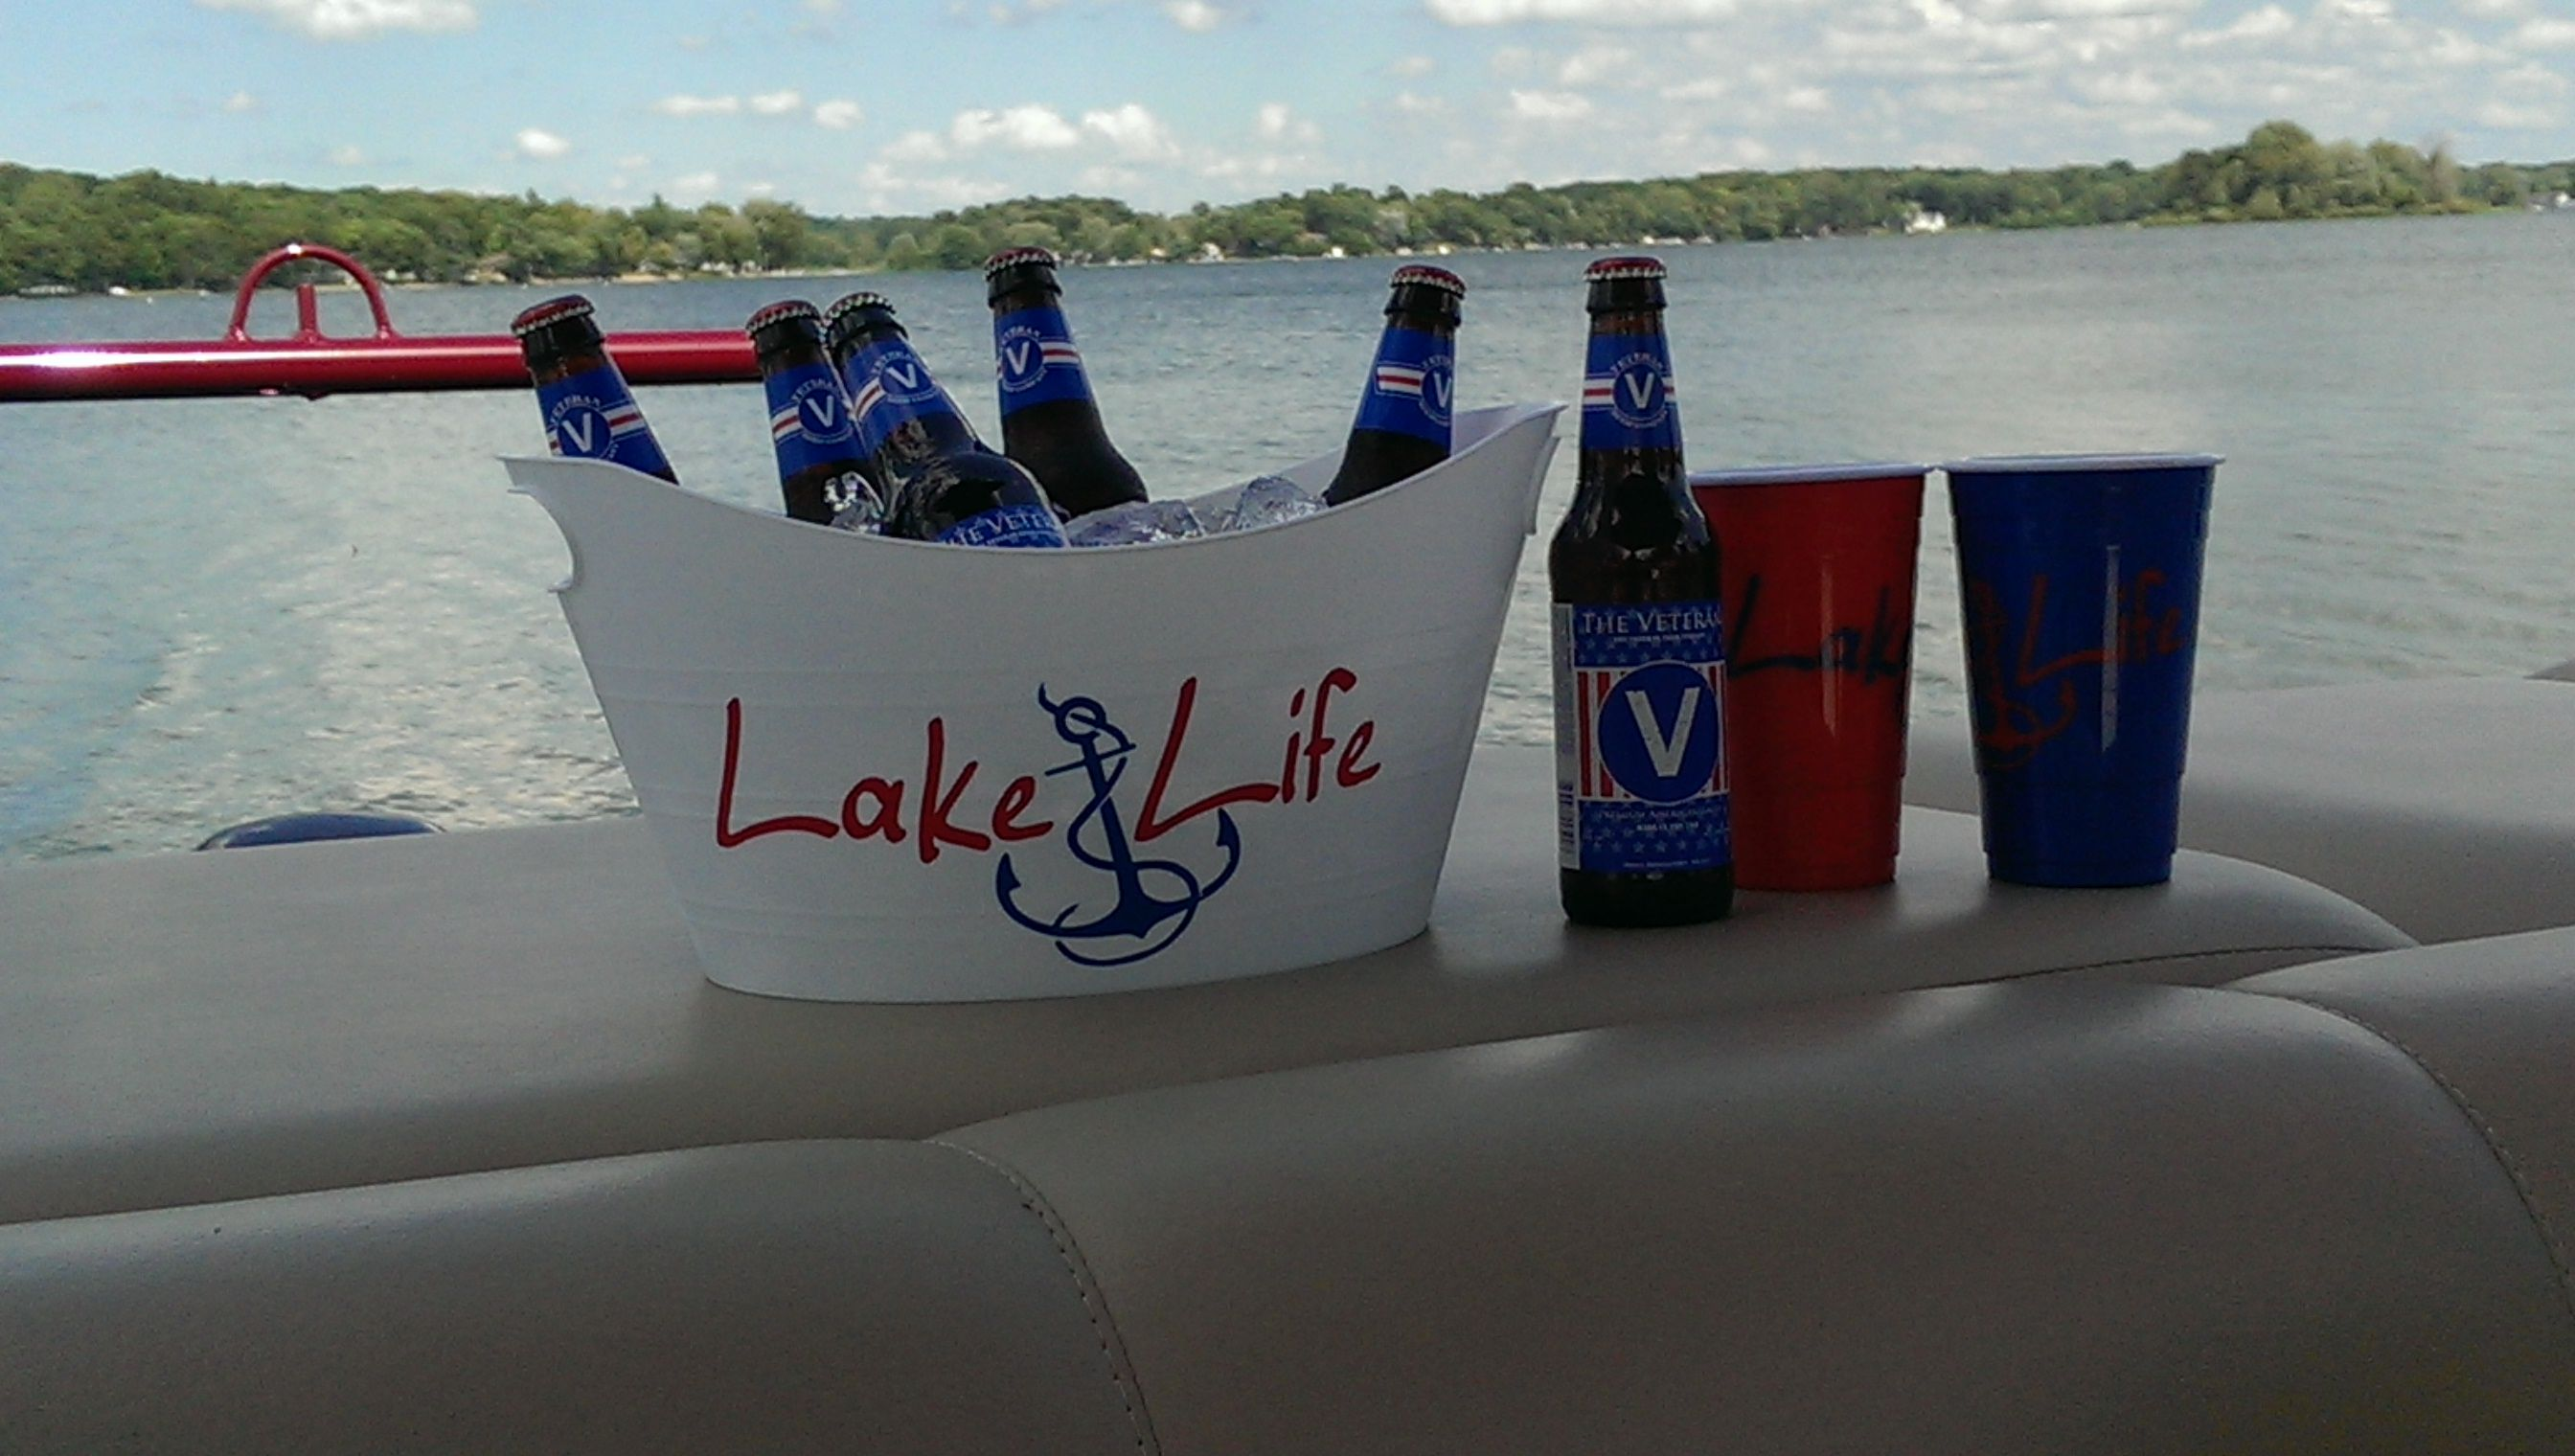 Veterans Beer and #LakeLife set on the boat. :)  Interested in the lake life set let me know, I can point you in the right direction to get yours